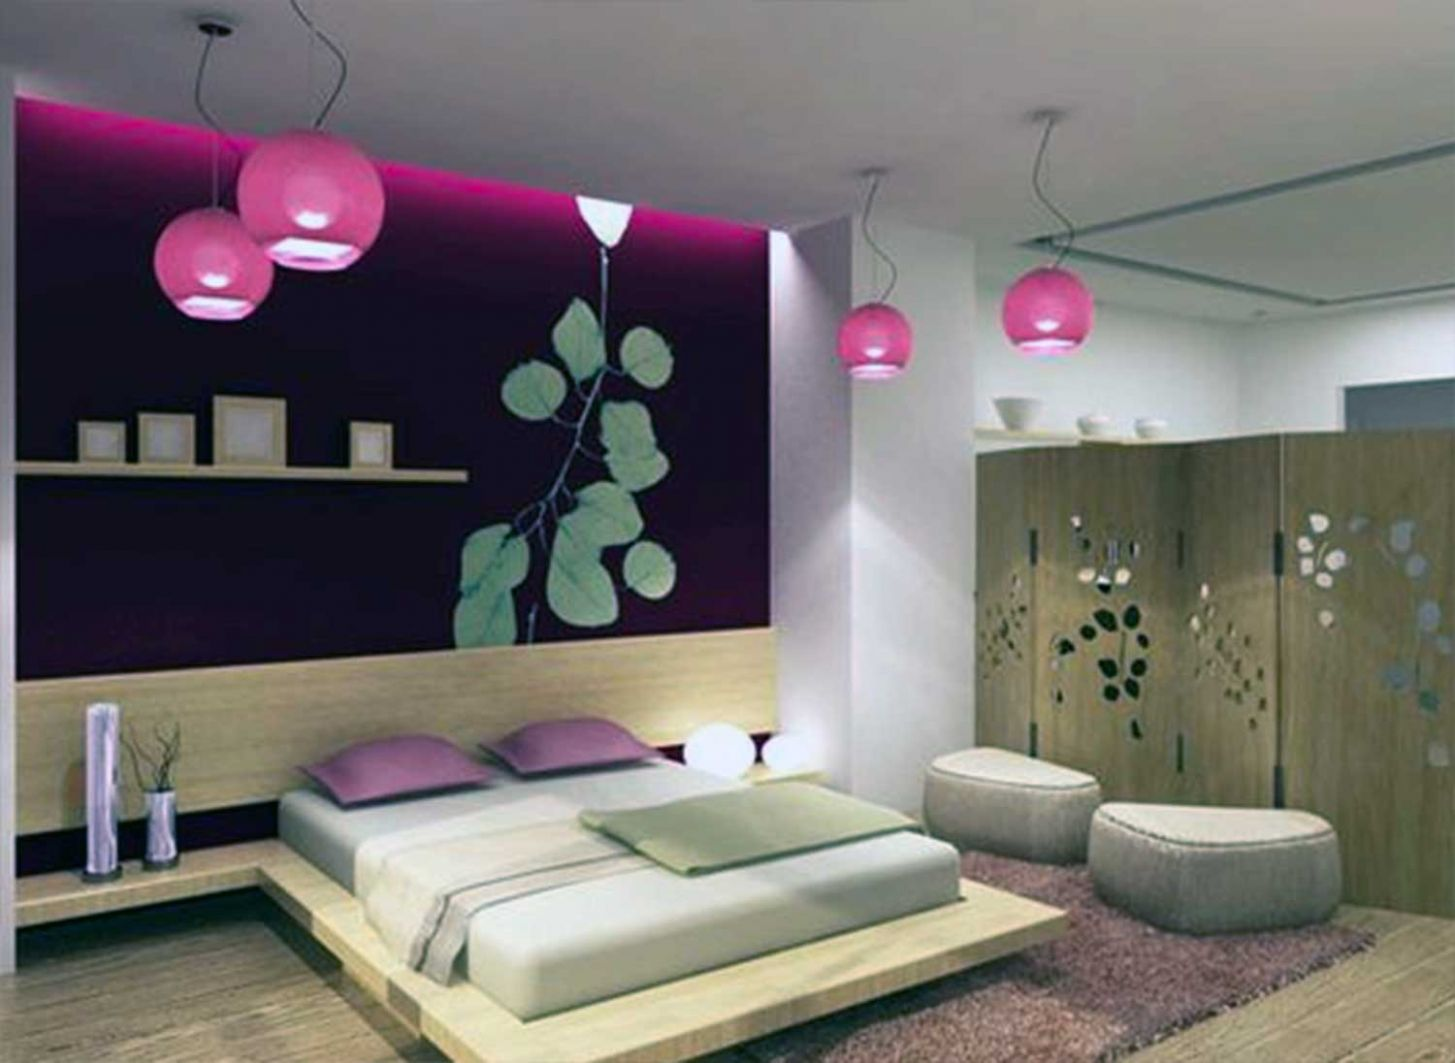 Japanese Style Bedroom Ideas For Girls - My Lovely Home - bedroom ideas japanese style